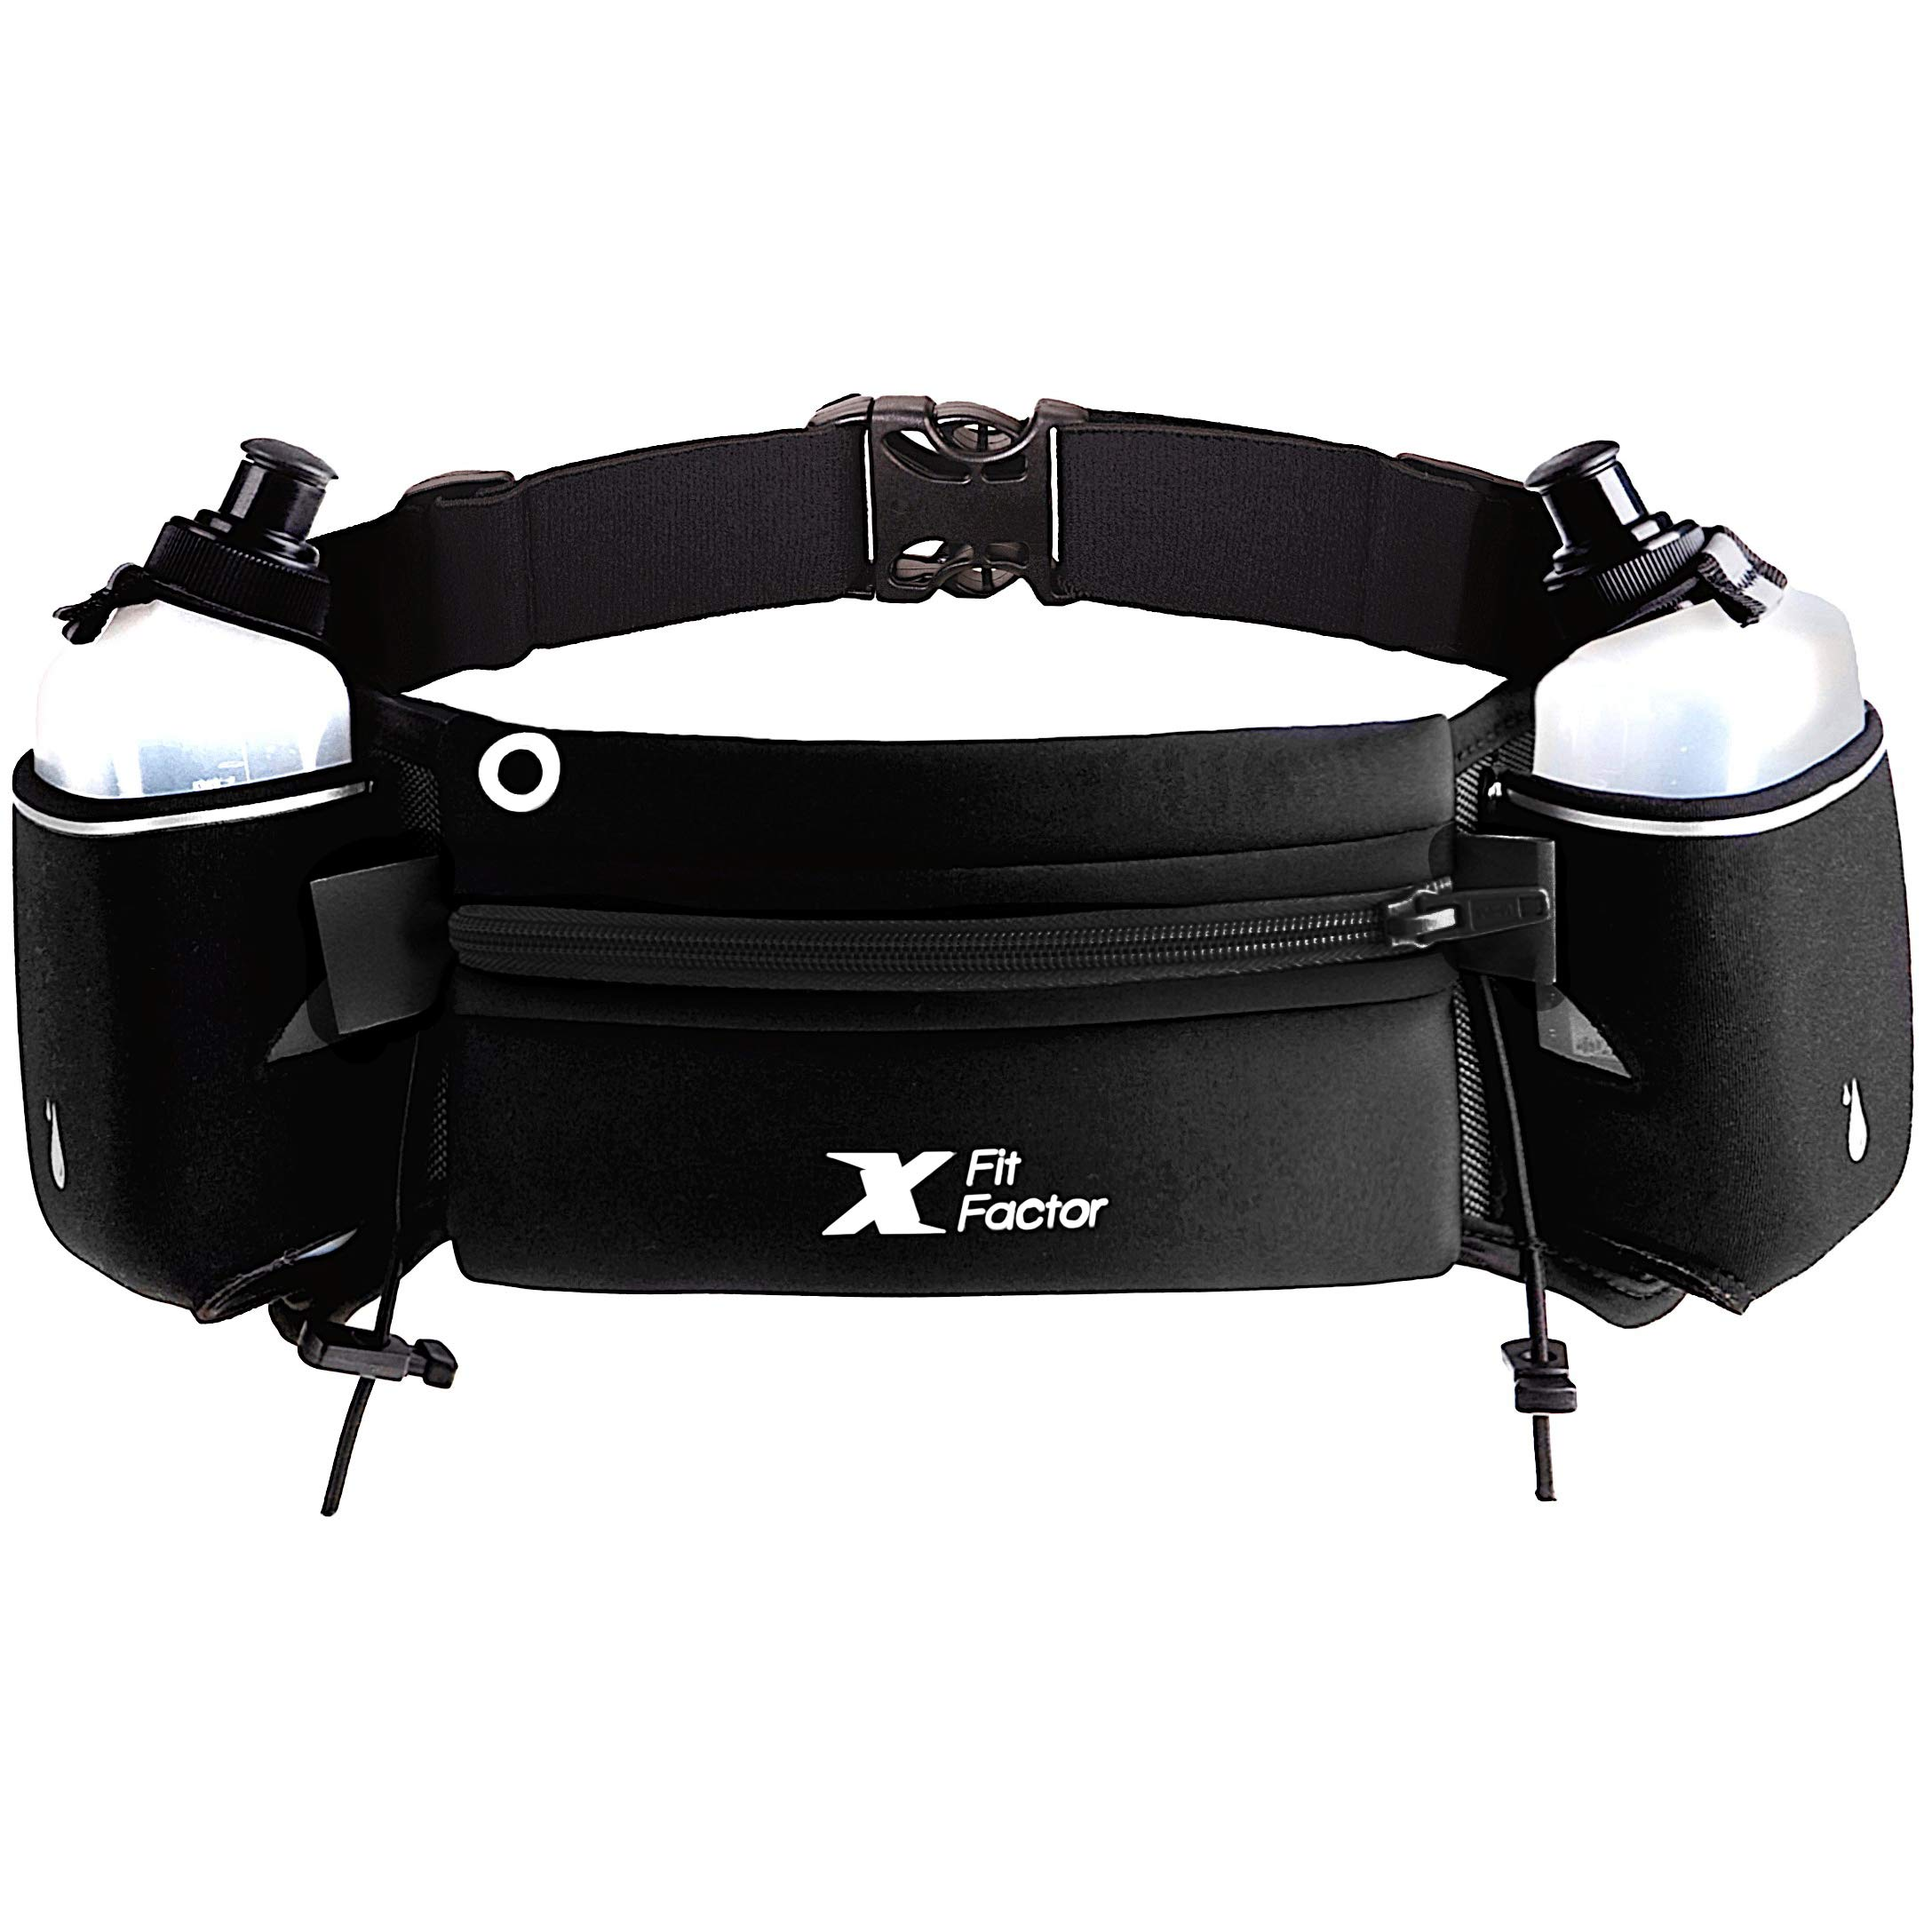 Running Hydration Belt - Waist Bag for Runners Women and Men - Adjustable Fuel Belt with